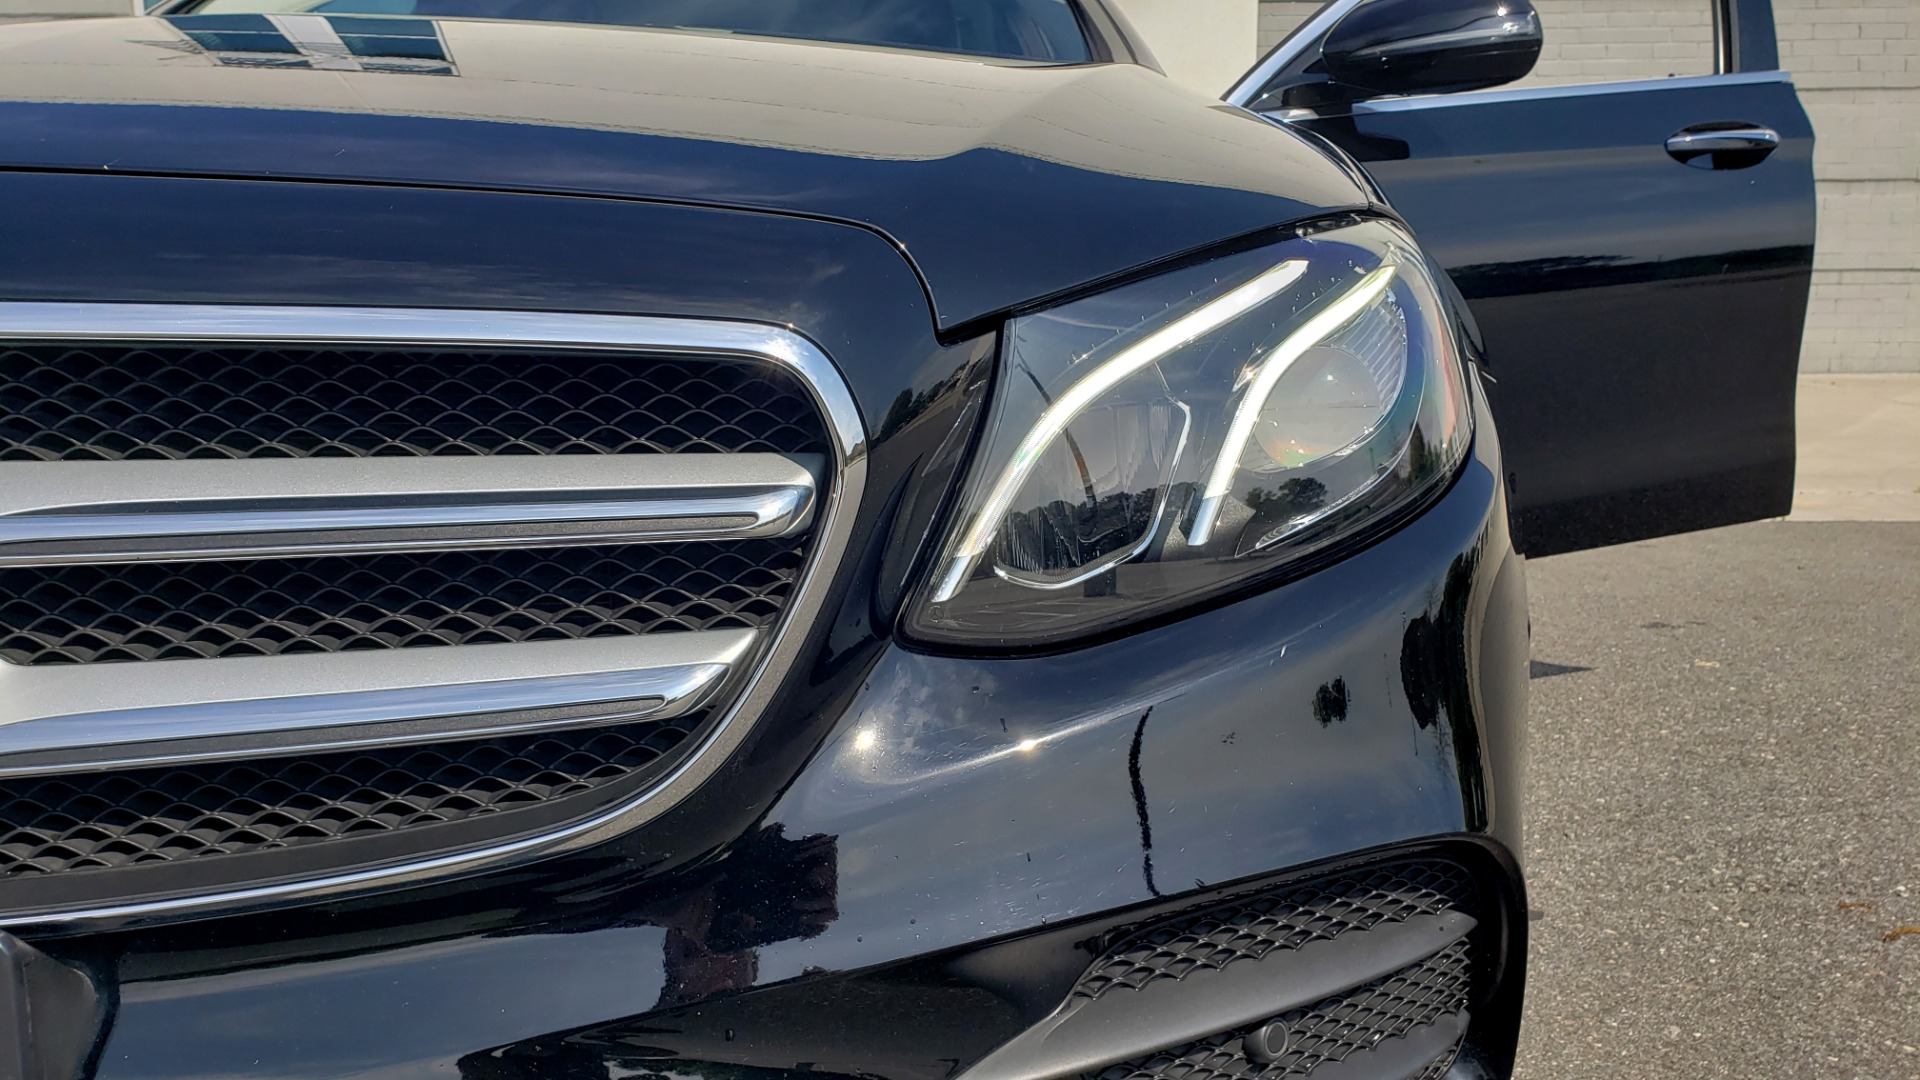 Used 2018 Mercedes-Benz E-CLASS E 300 PREMIUM / 4MATIC / NAV / SUNROOF / H/K SND / REARVIEW for sale $34,195 at Formula Imports in Charlotte NC 28227 22